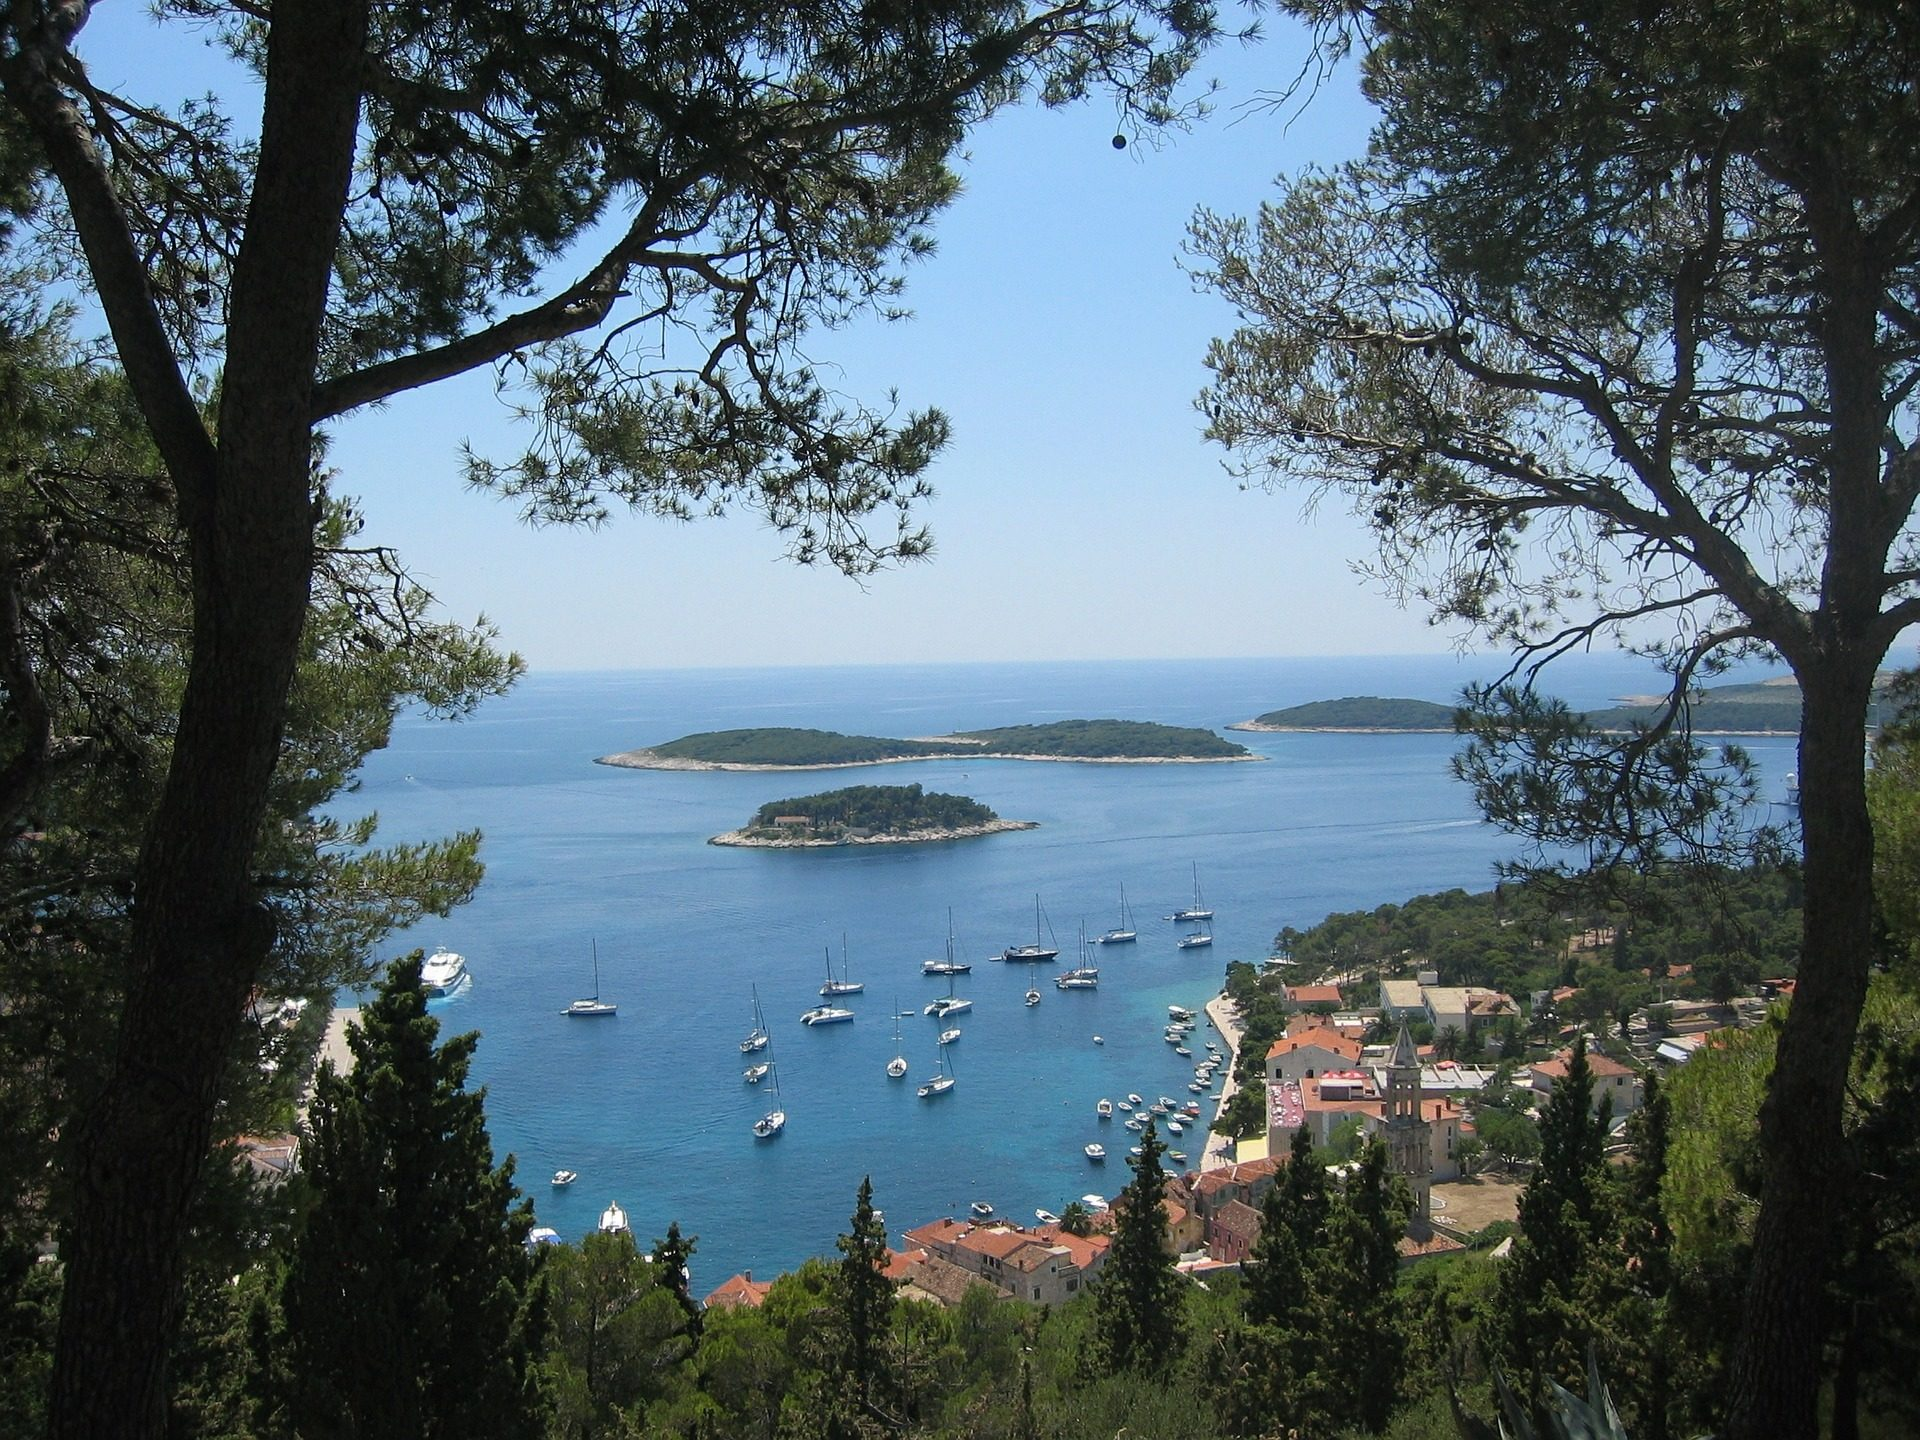 view of Hvar from up on a cliff with little islands and yachts dotted along the shore